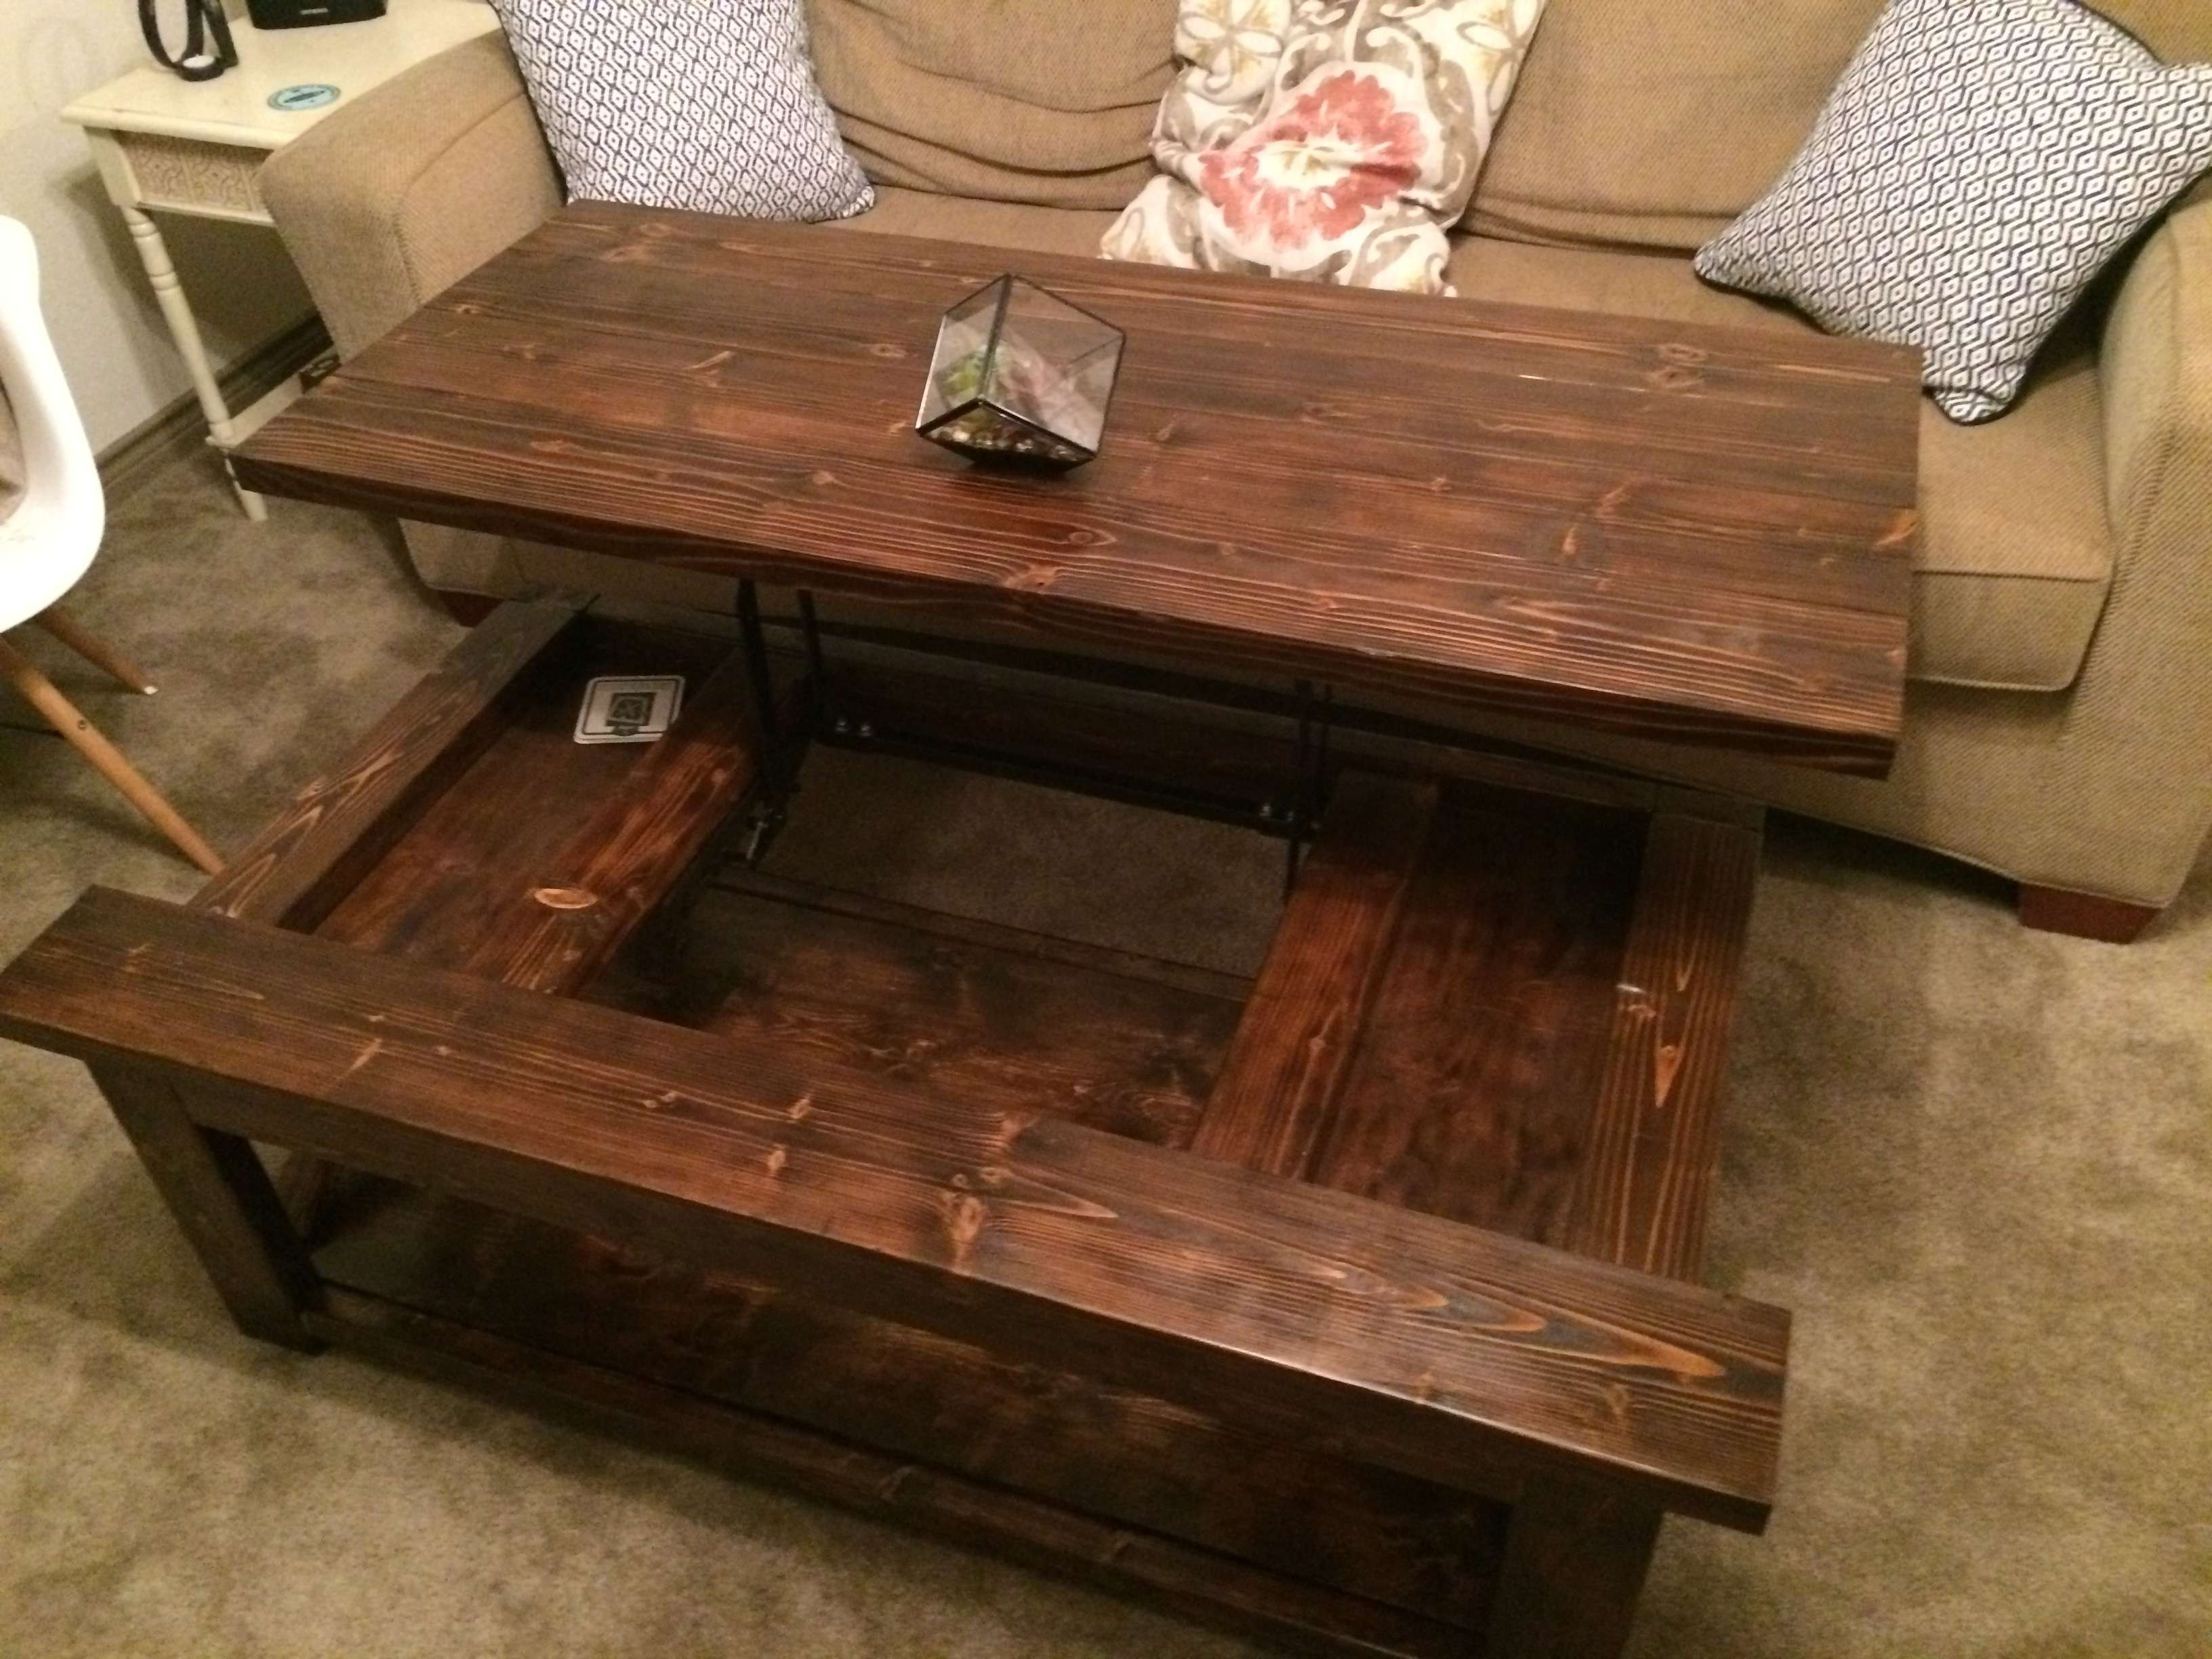 2017 Flip Top Coffee Tables For Ana White Diy Lift Top Coffee Table Rustic X Style Diy Projects (View 14 of 20)